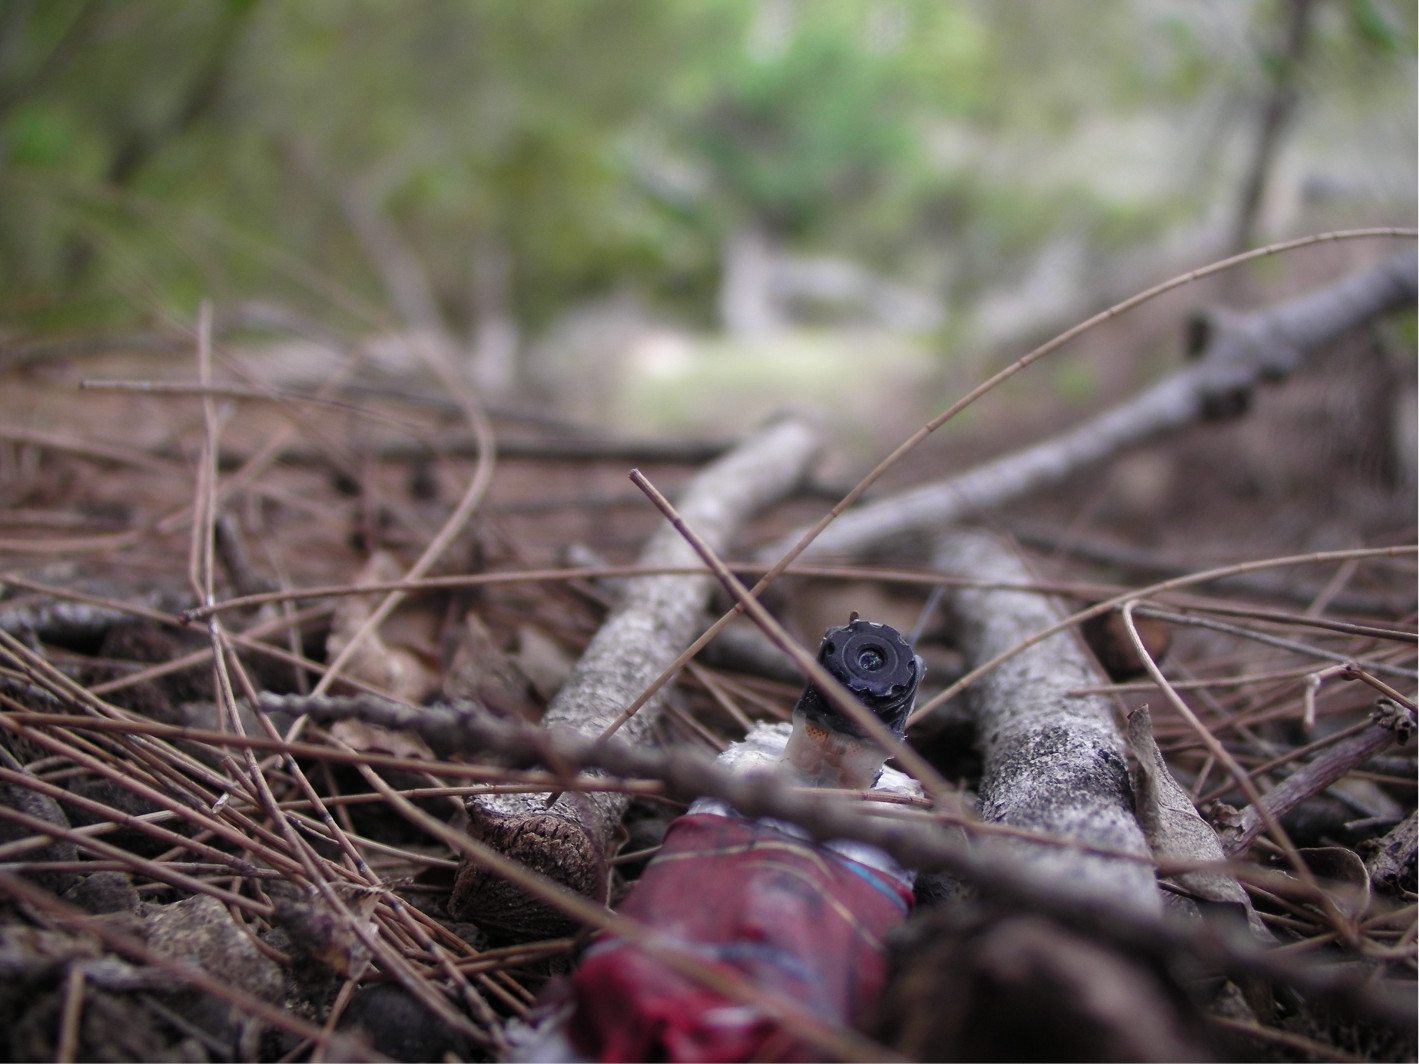 The crow-cams have homing beacons that let us find them on the forest floor when they fall off.